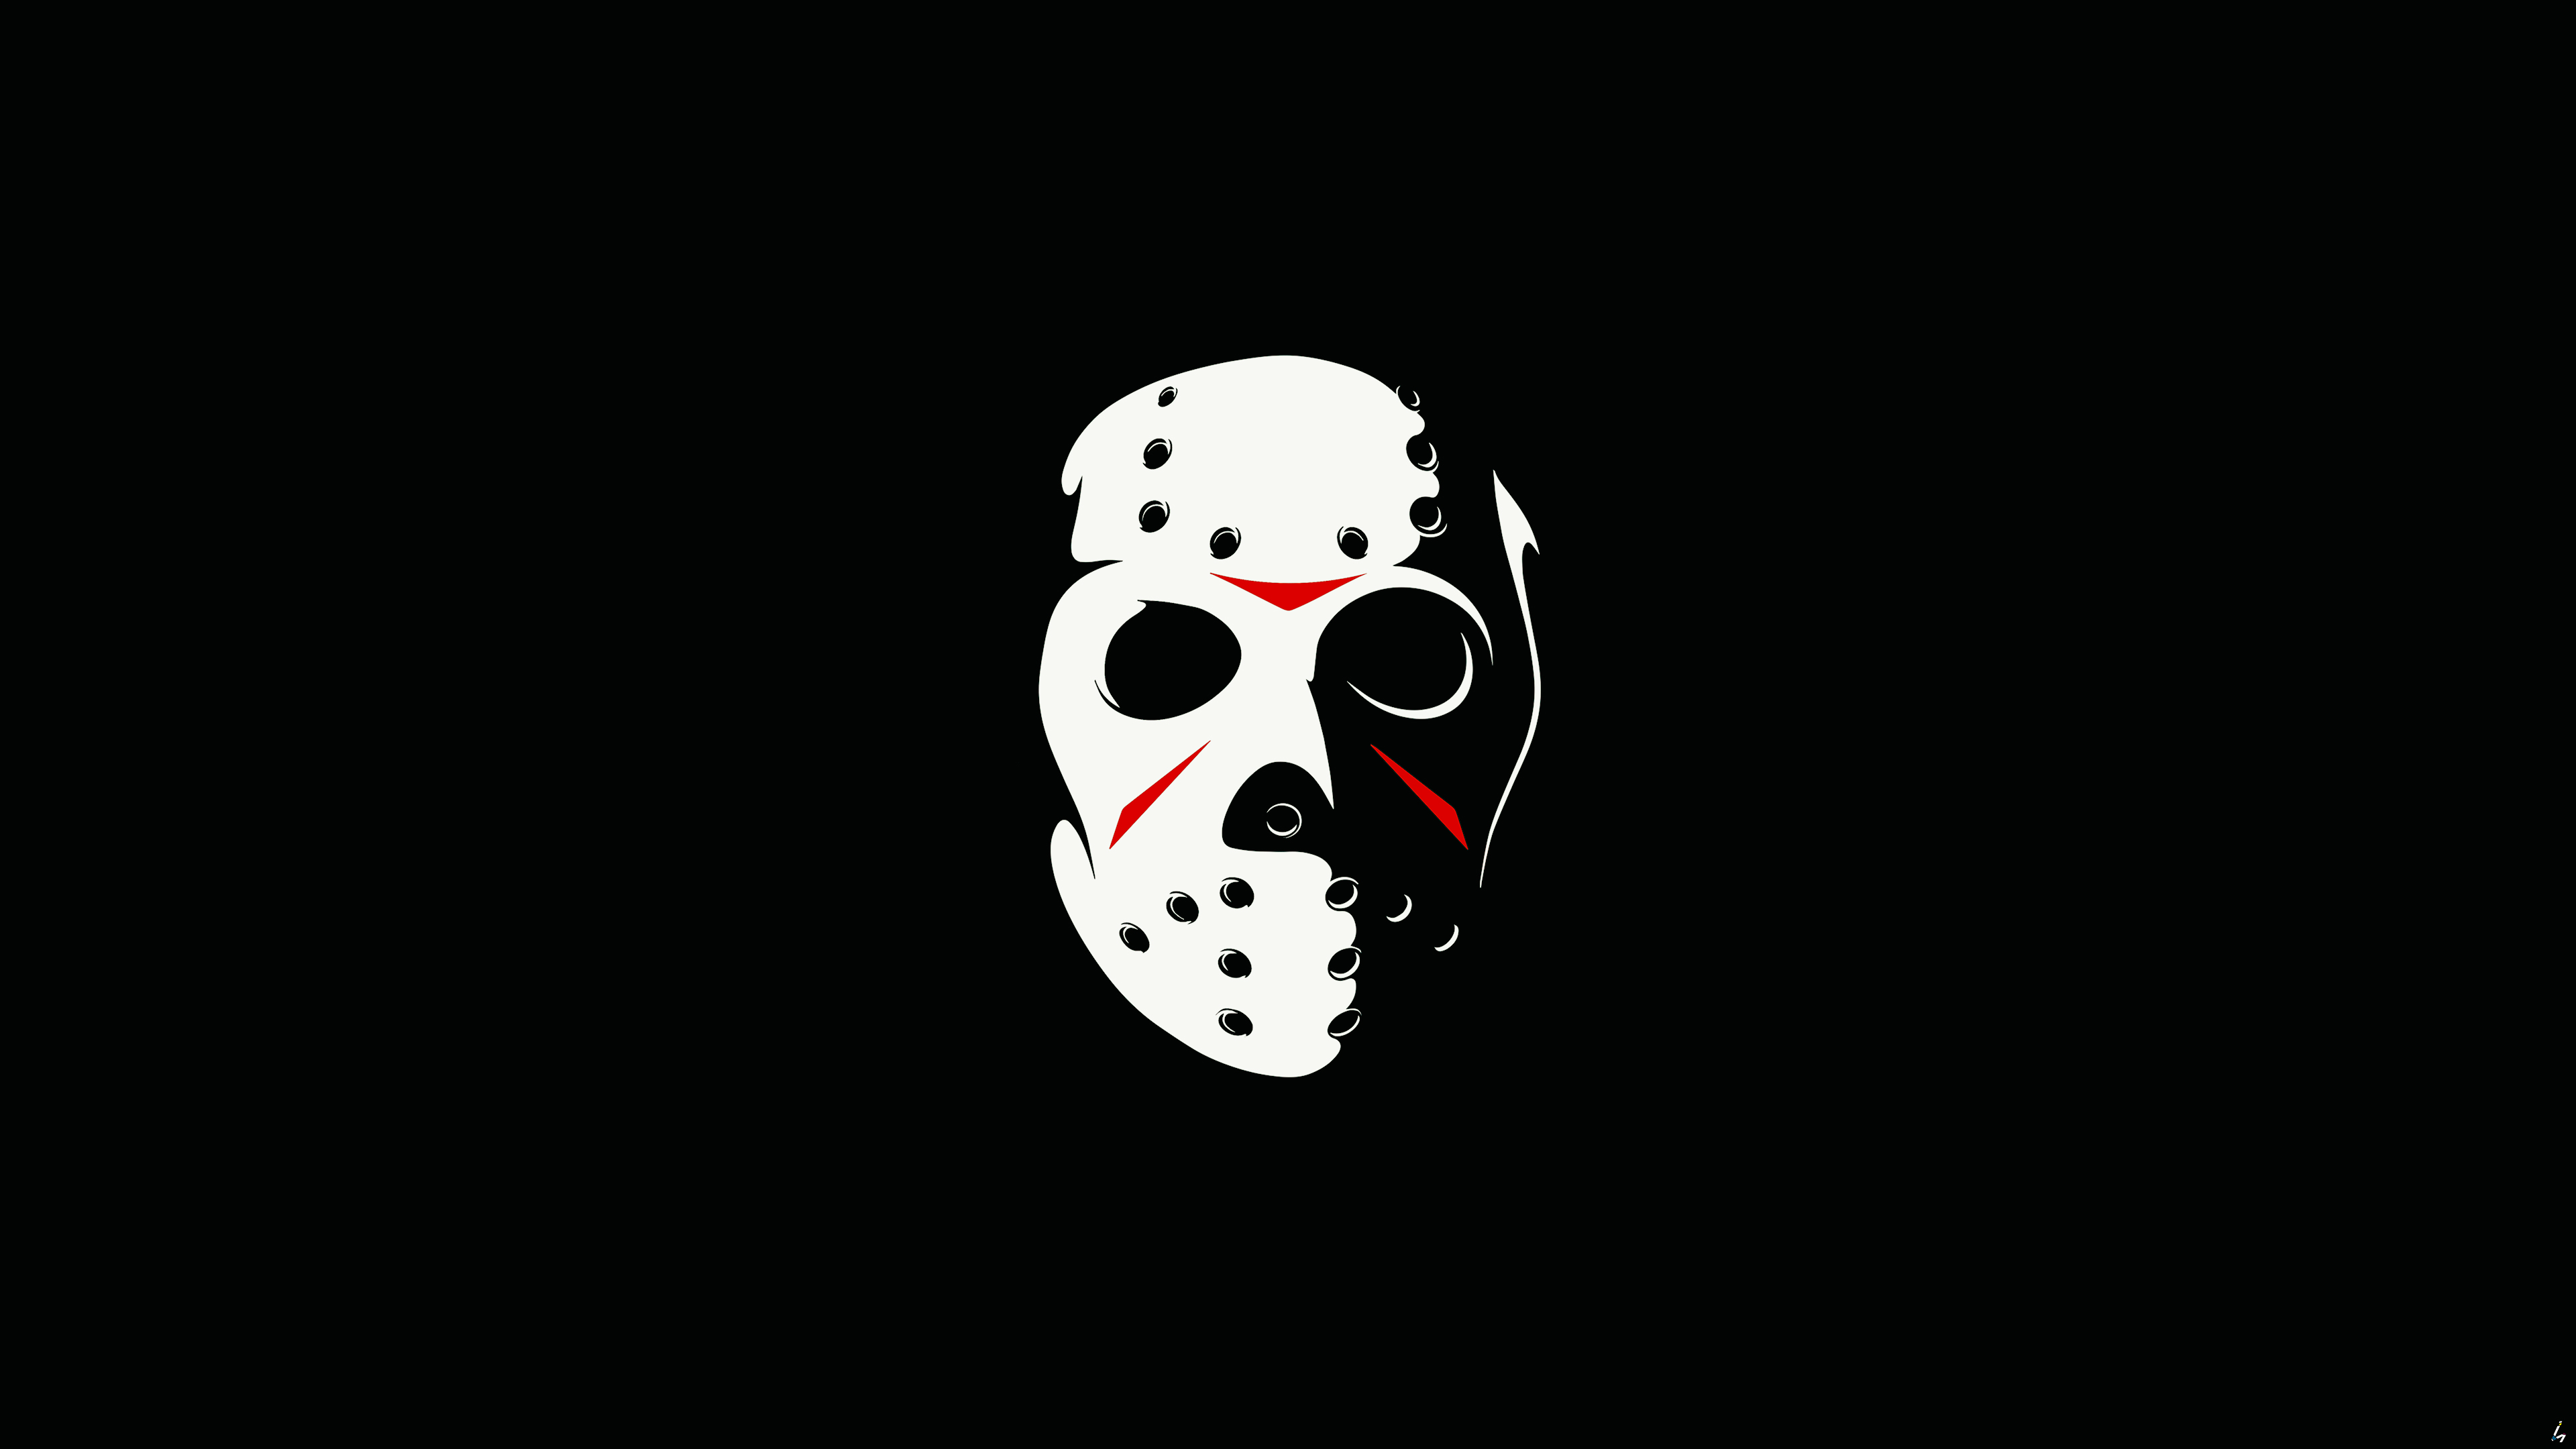 Friday The 13th The Game Minimalism Dark 4k, HD Games, 4k ...